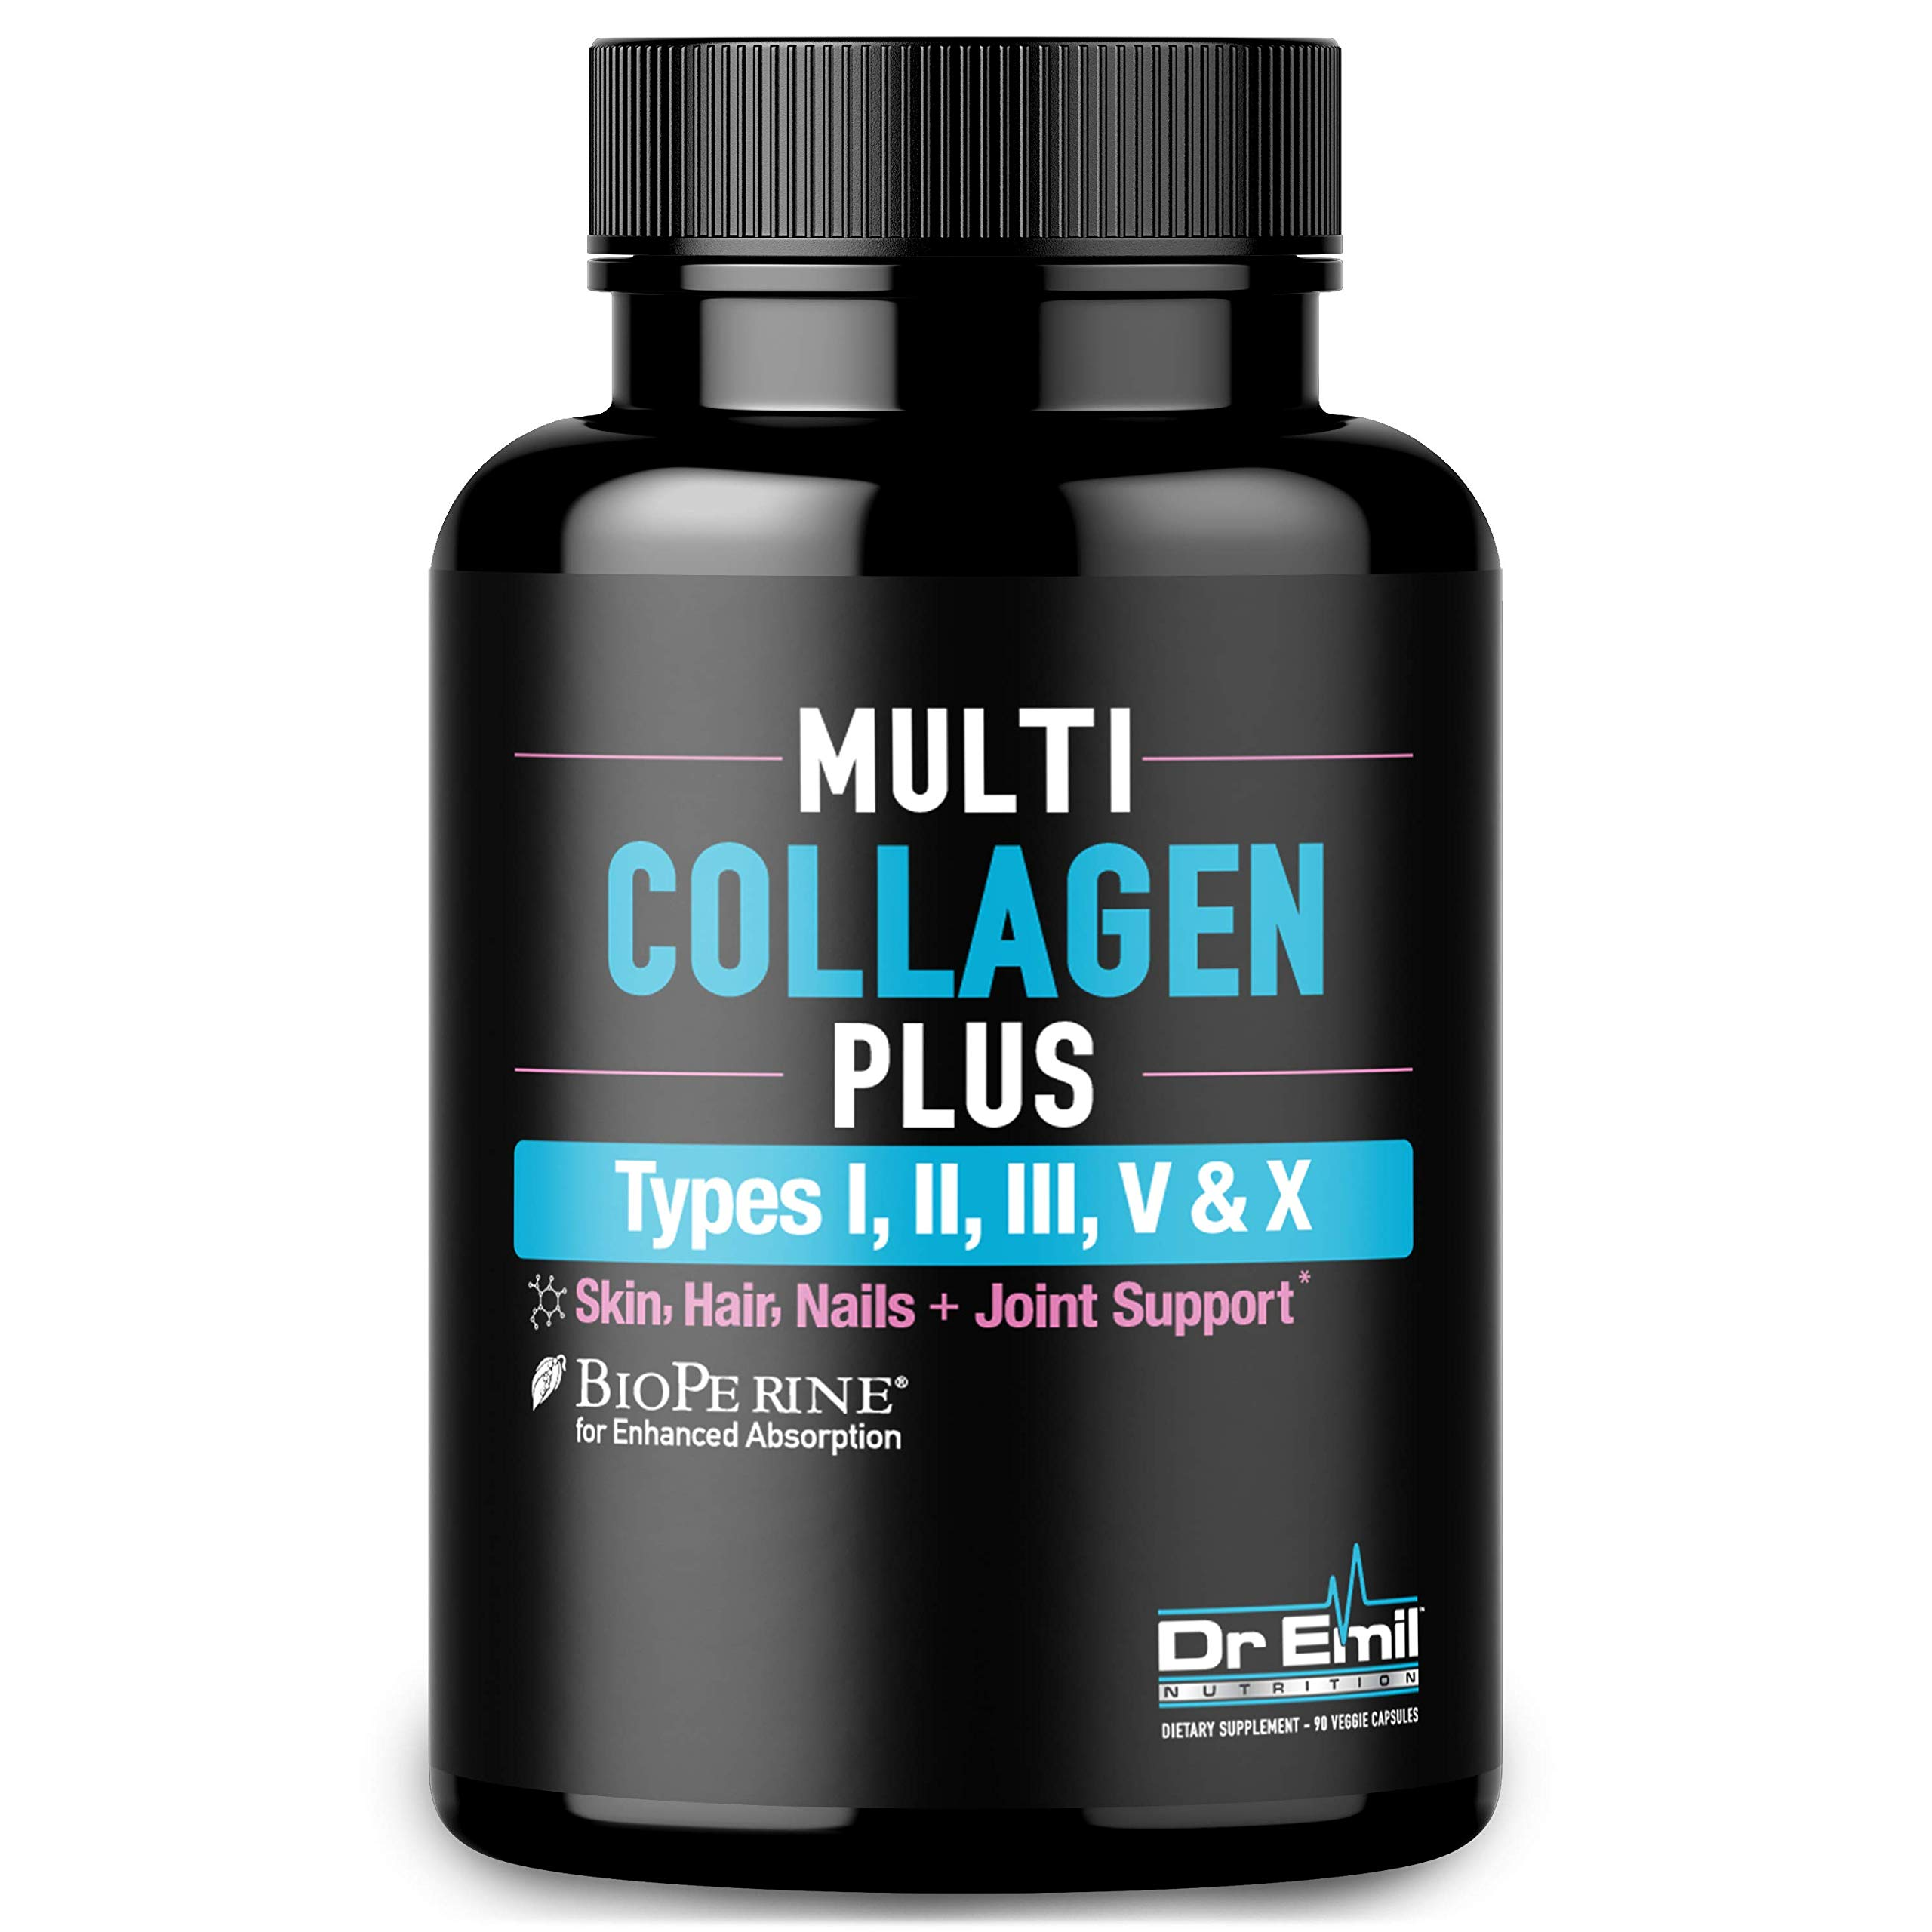 Multi Collagen Pills (Types I, II, III, V & X) - Collagen Peptides + Absorption Enhancer - Grass Fed Collagen Protein Supplement for Anti-Aging, Hair, Skin, Nails and Joints (90 Collagen Capsules) by DR EMIL NUTRITION